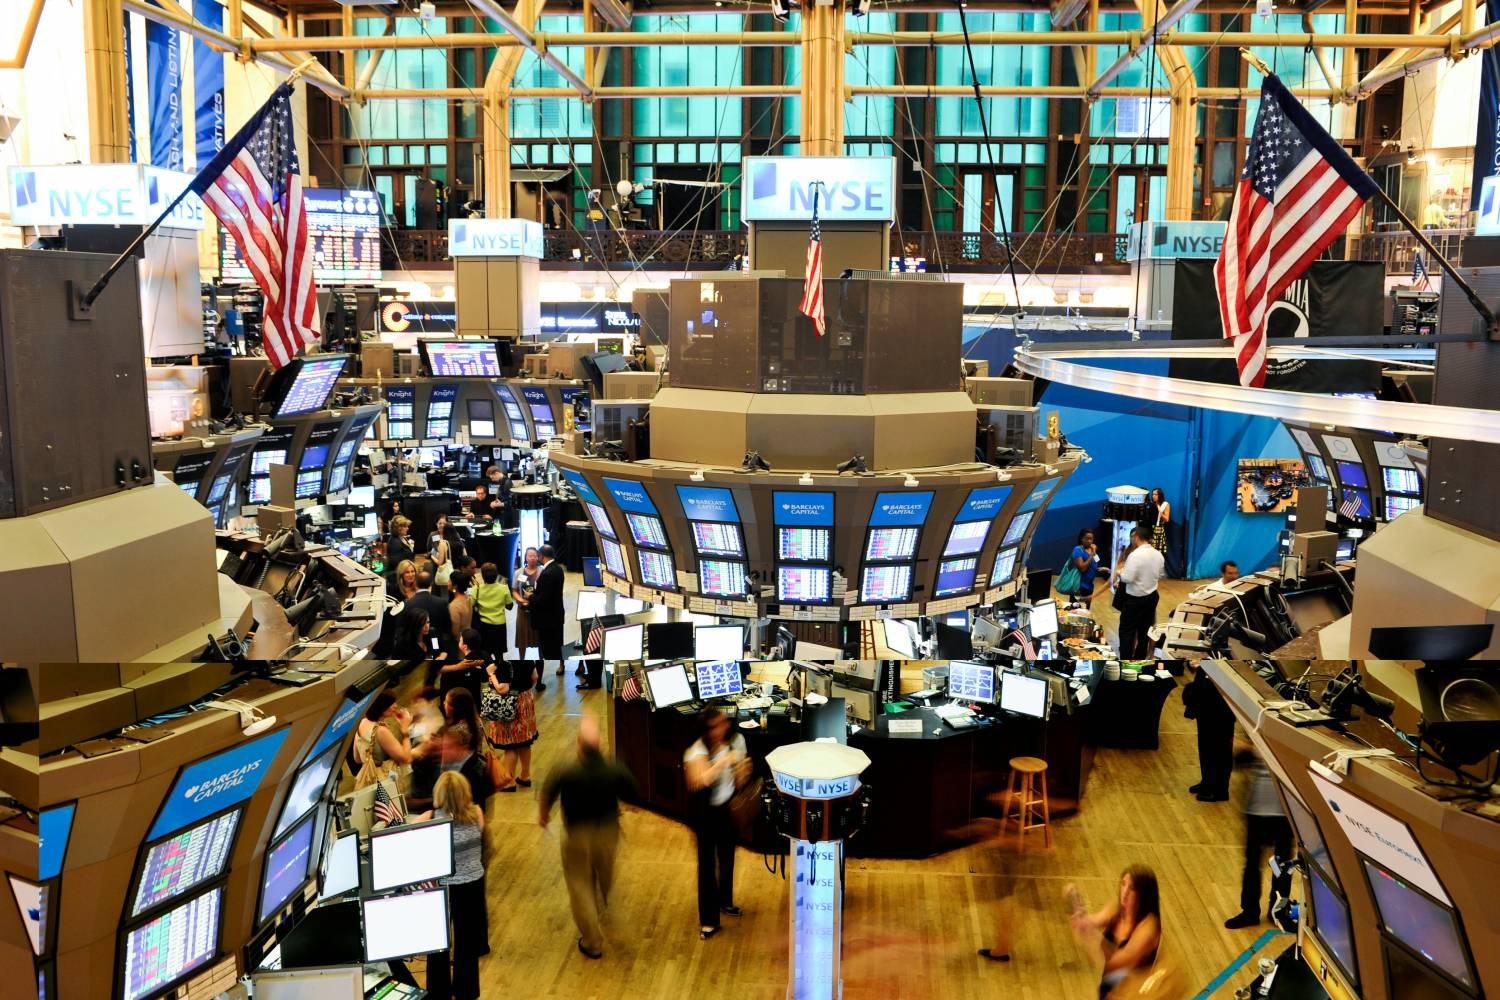 Inside the trading floor of the New York Stock Exchange